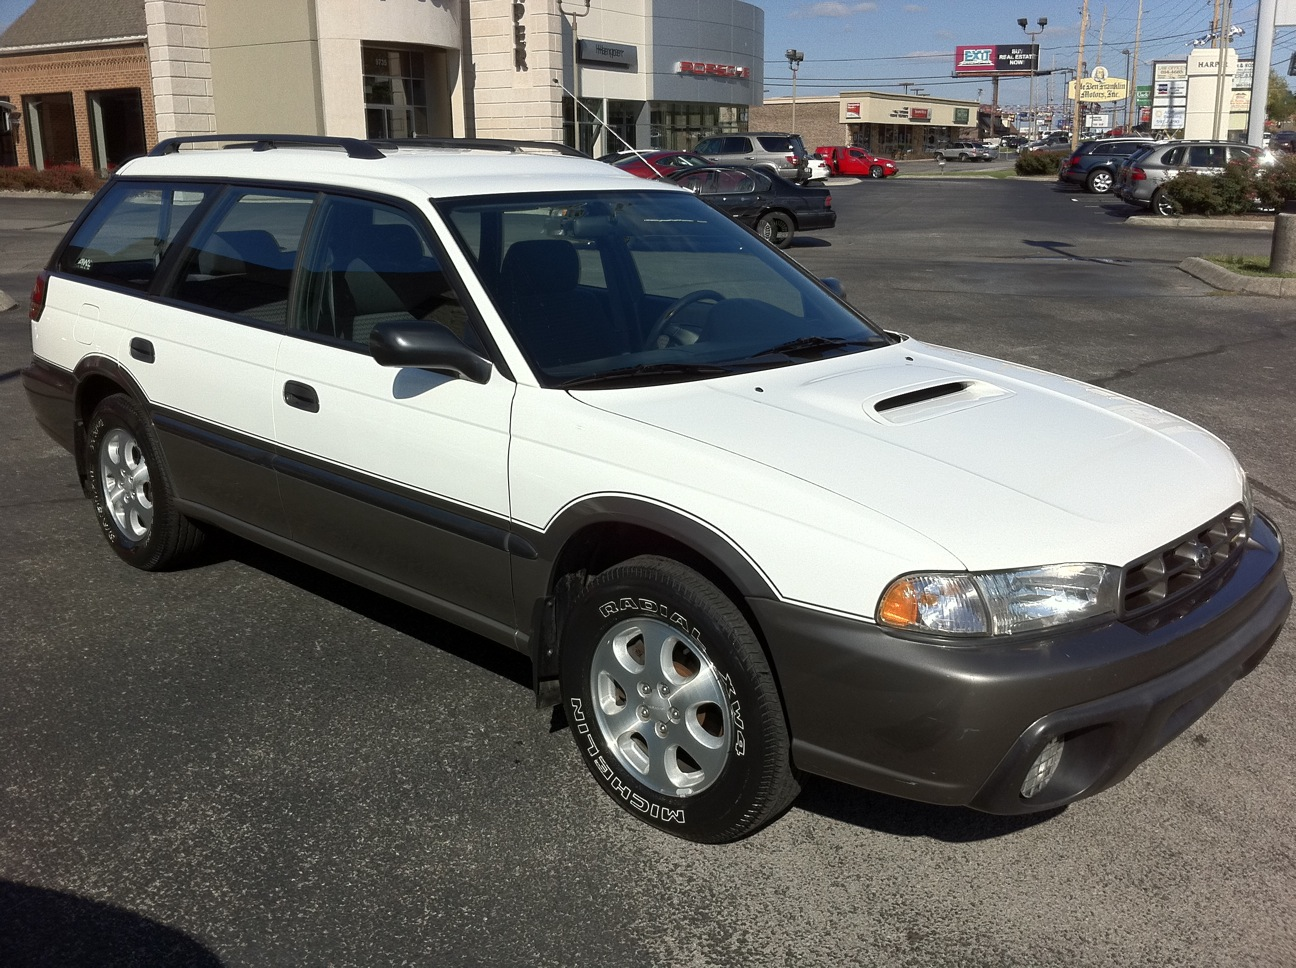 Pre Owned Infiniti >> Harper Infiniti Trade-ins: 1998 Subaru Outback for sale in ...